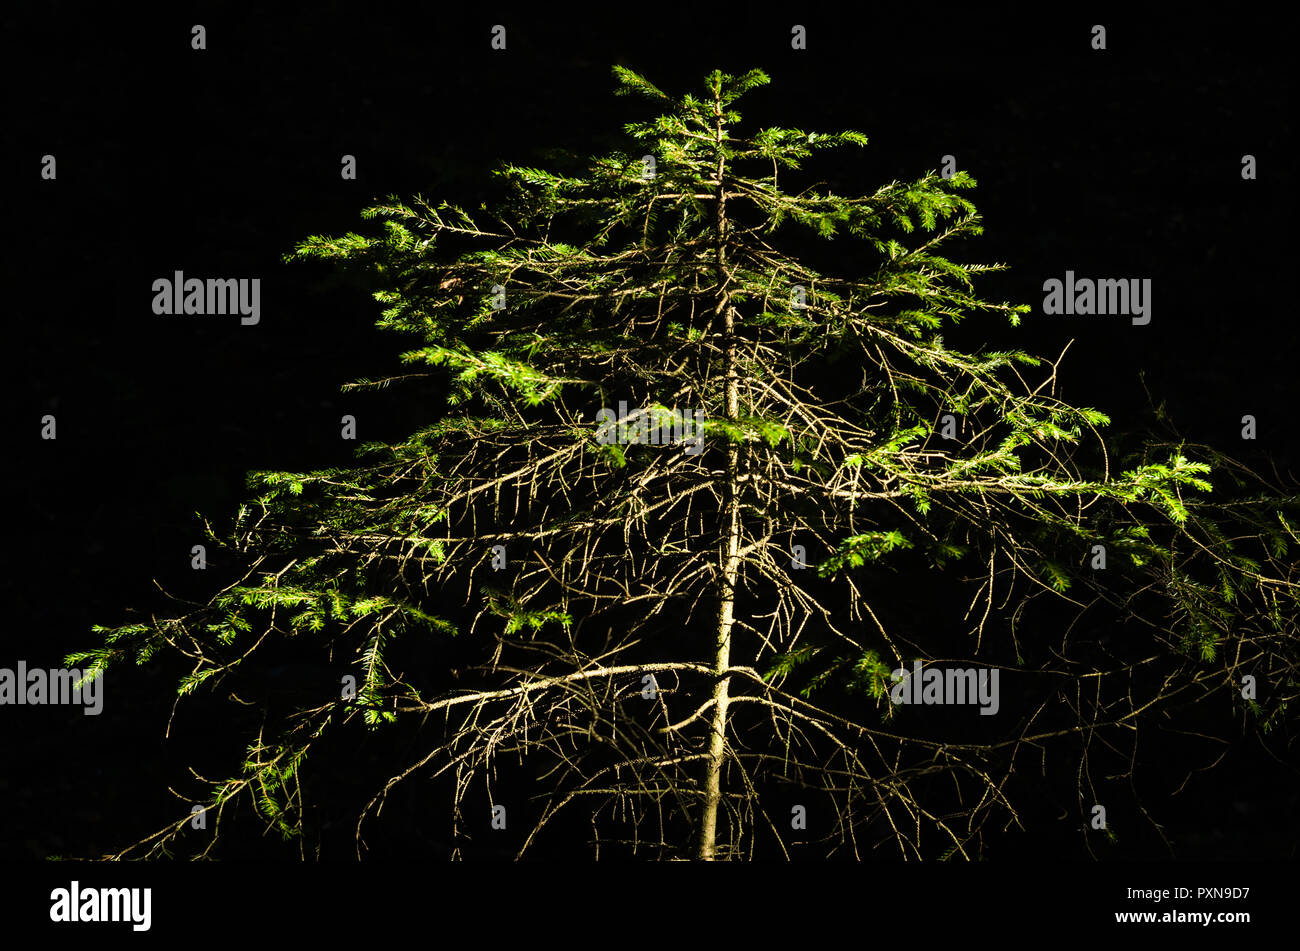 Small Norway spruce isolated on black background. - Stock Image